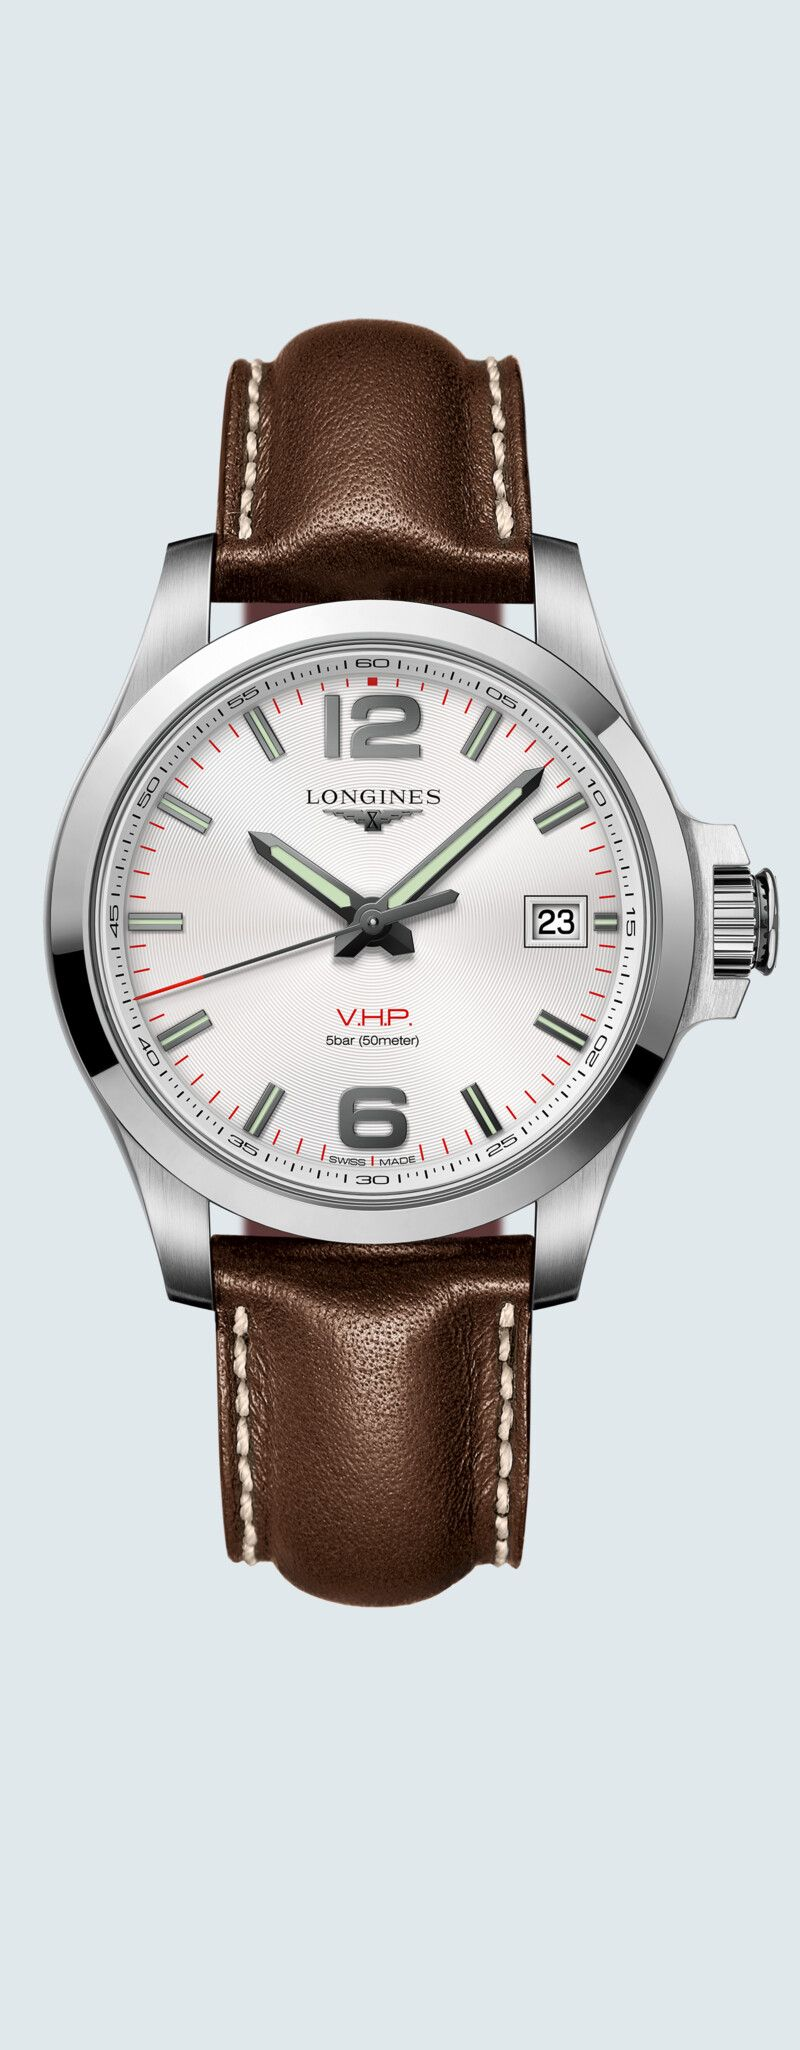 41.00 mm Edelstahl case with Silber graviert dial and Lederarmband Braun strap - case zoom view